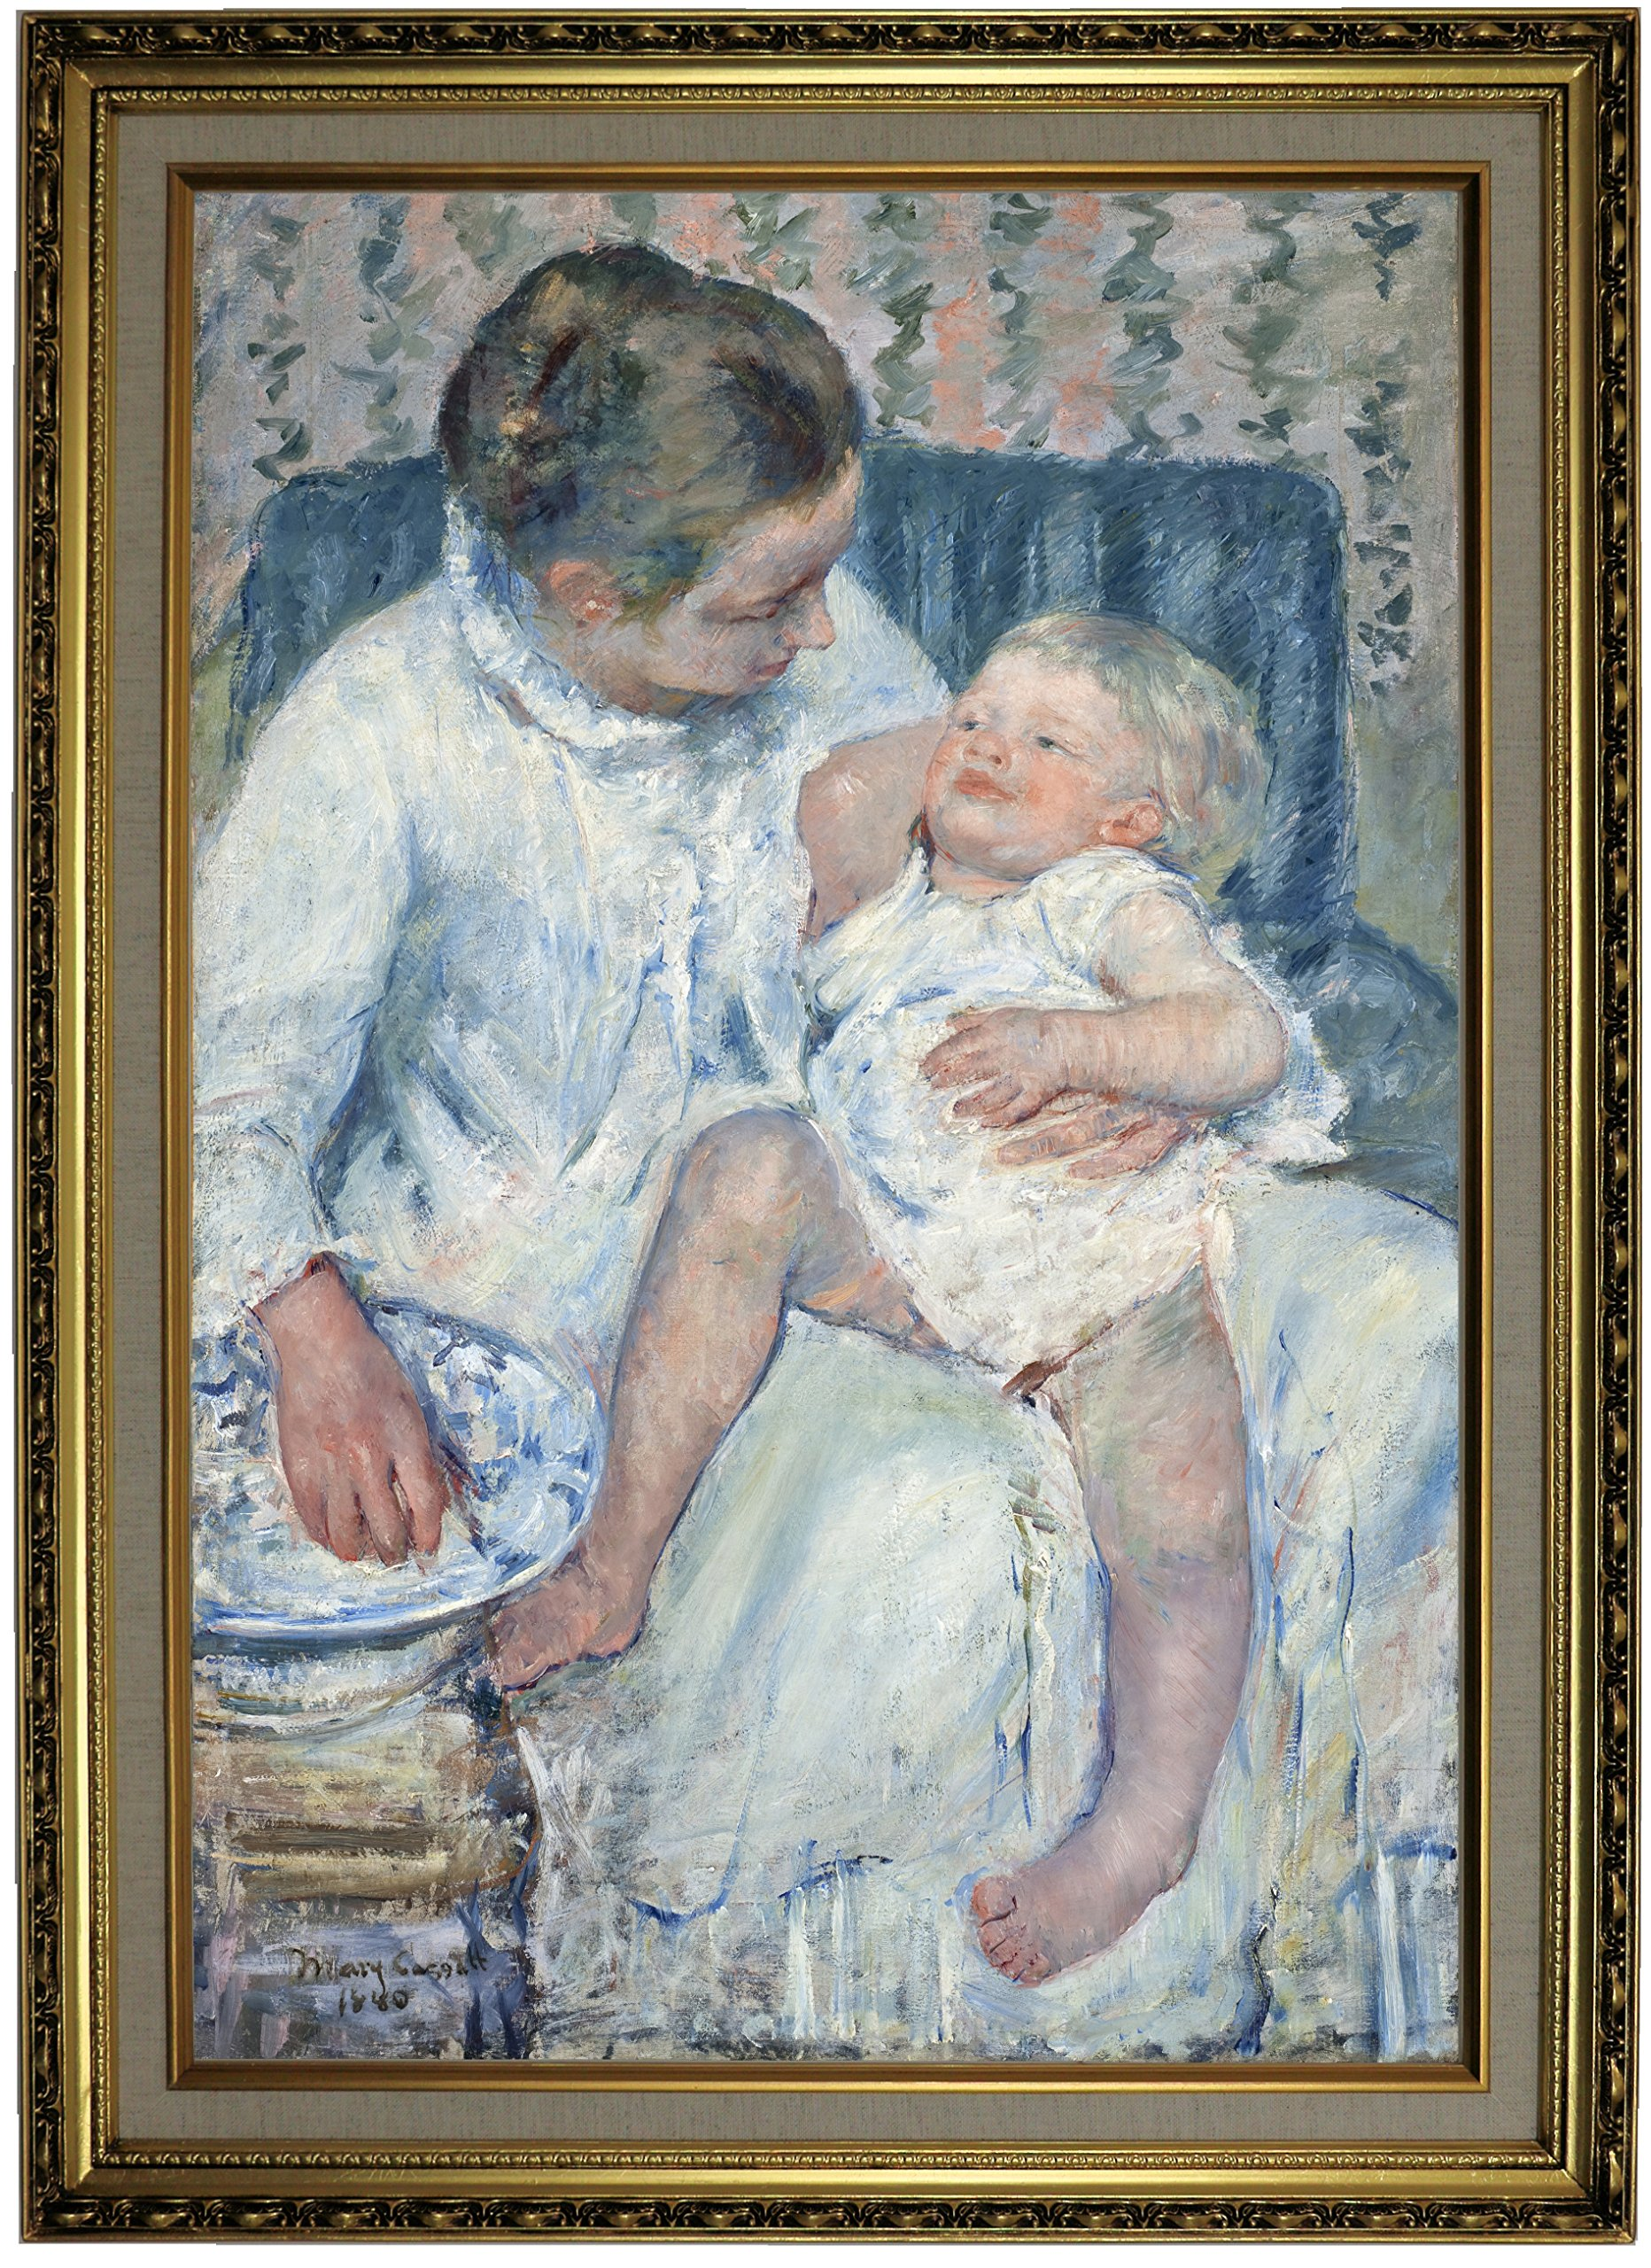 Historic Art Gallery Mother about to Wash Her Sleepy Child by Mary Cassatt Framed Canvas Print, 19'' x 28'', Gold Lined